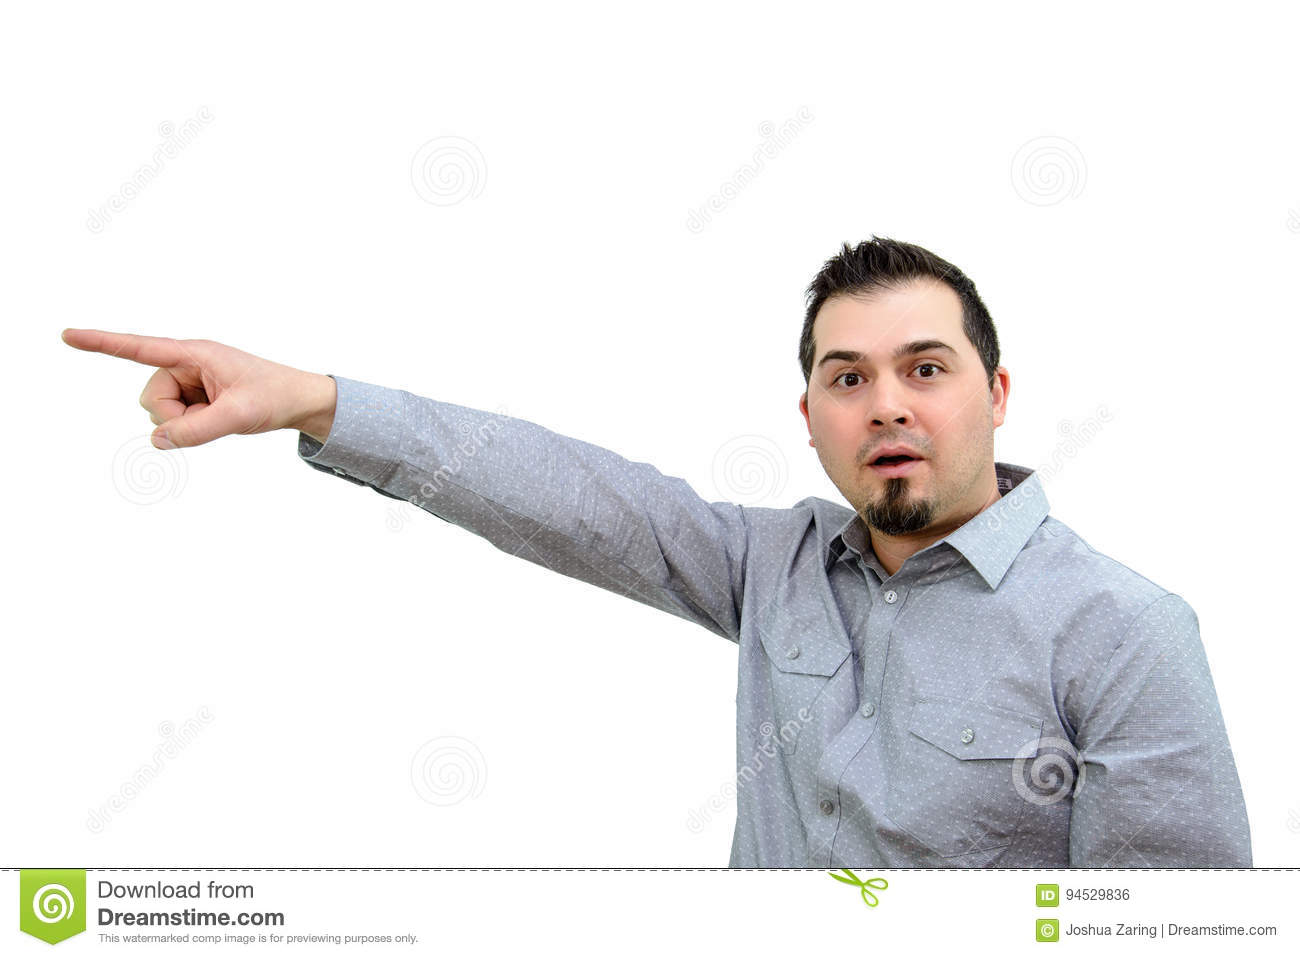 Man in Grey Shirt pointing Expressively on white backdrop